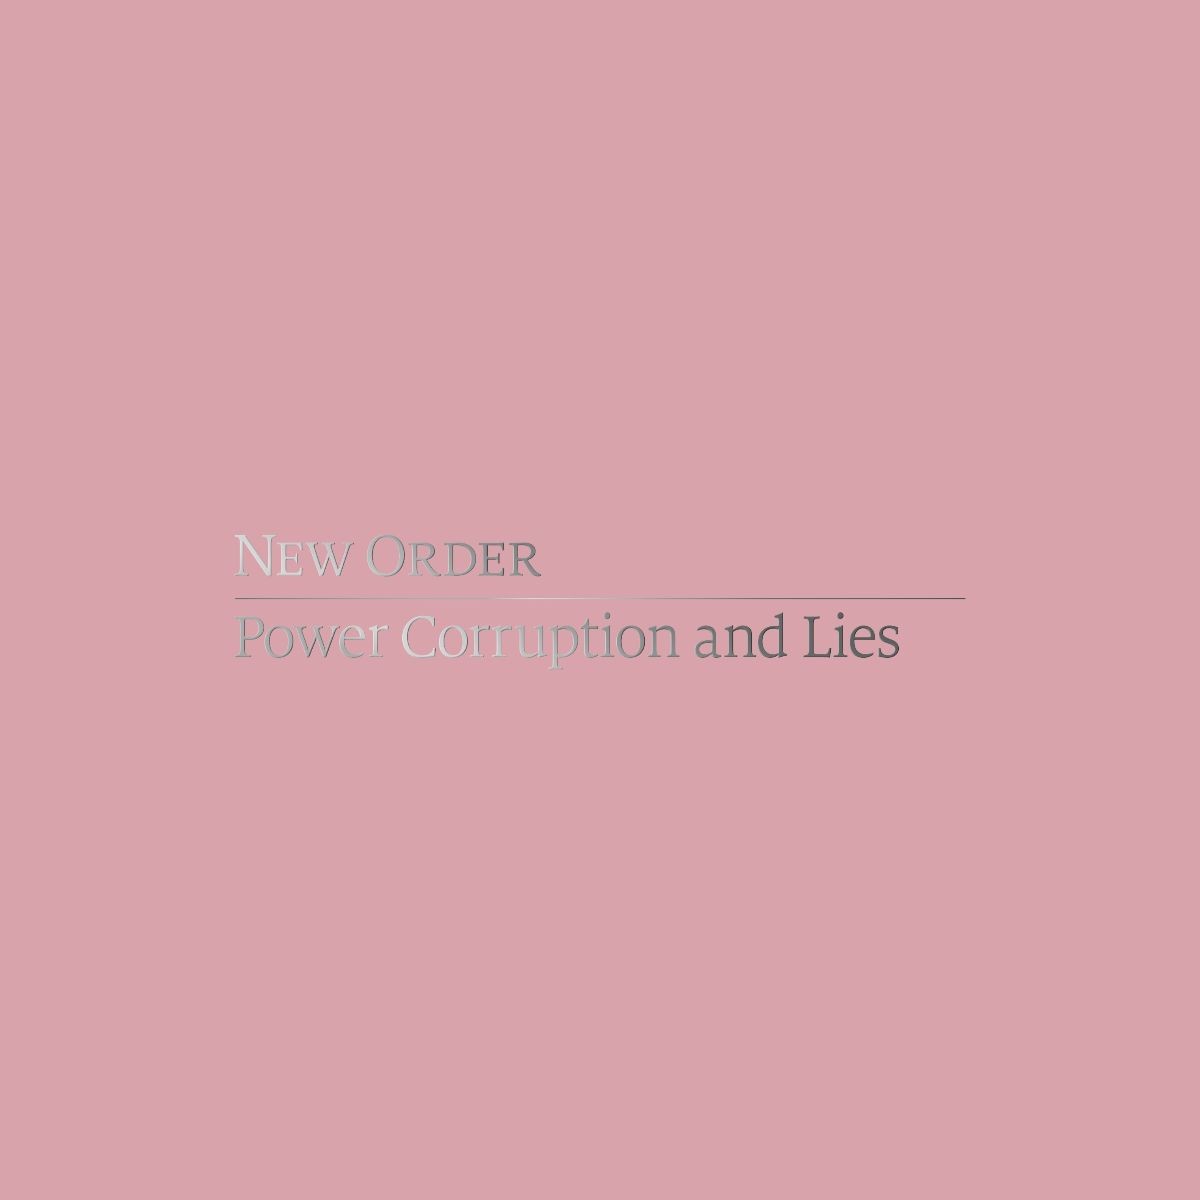 New Order: Power, Corruption & Lies - 2020 Definitive Edition